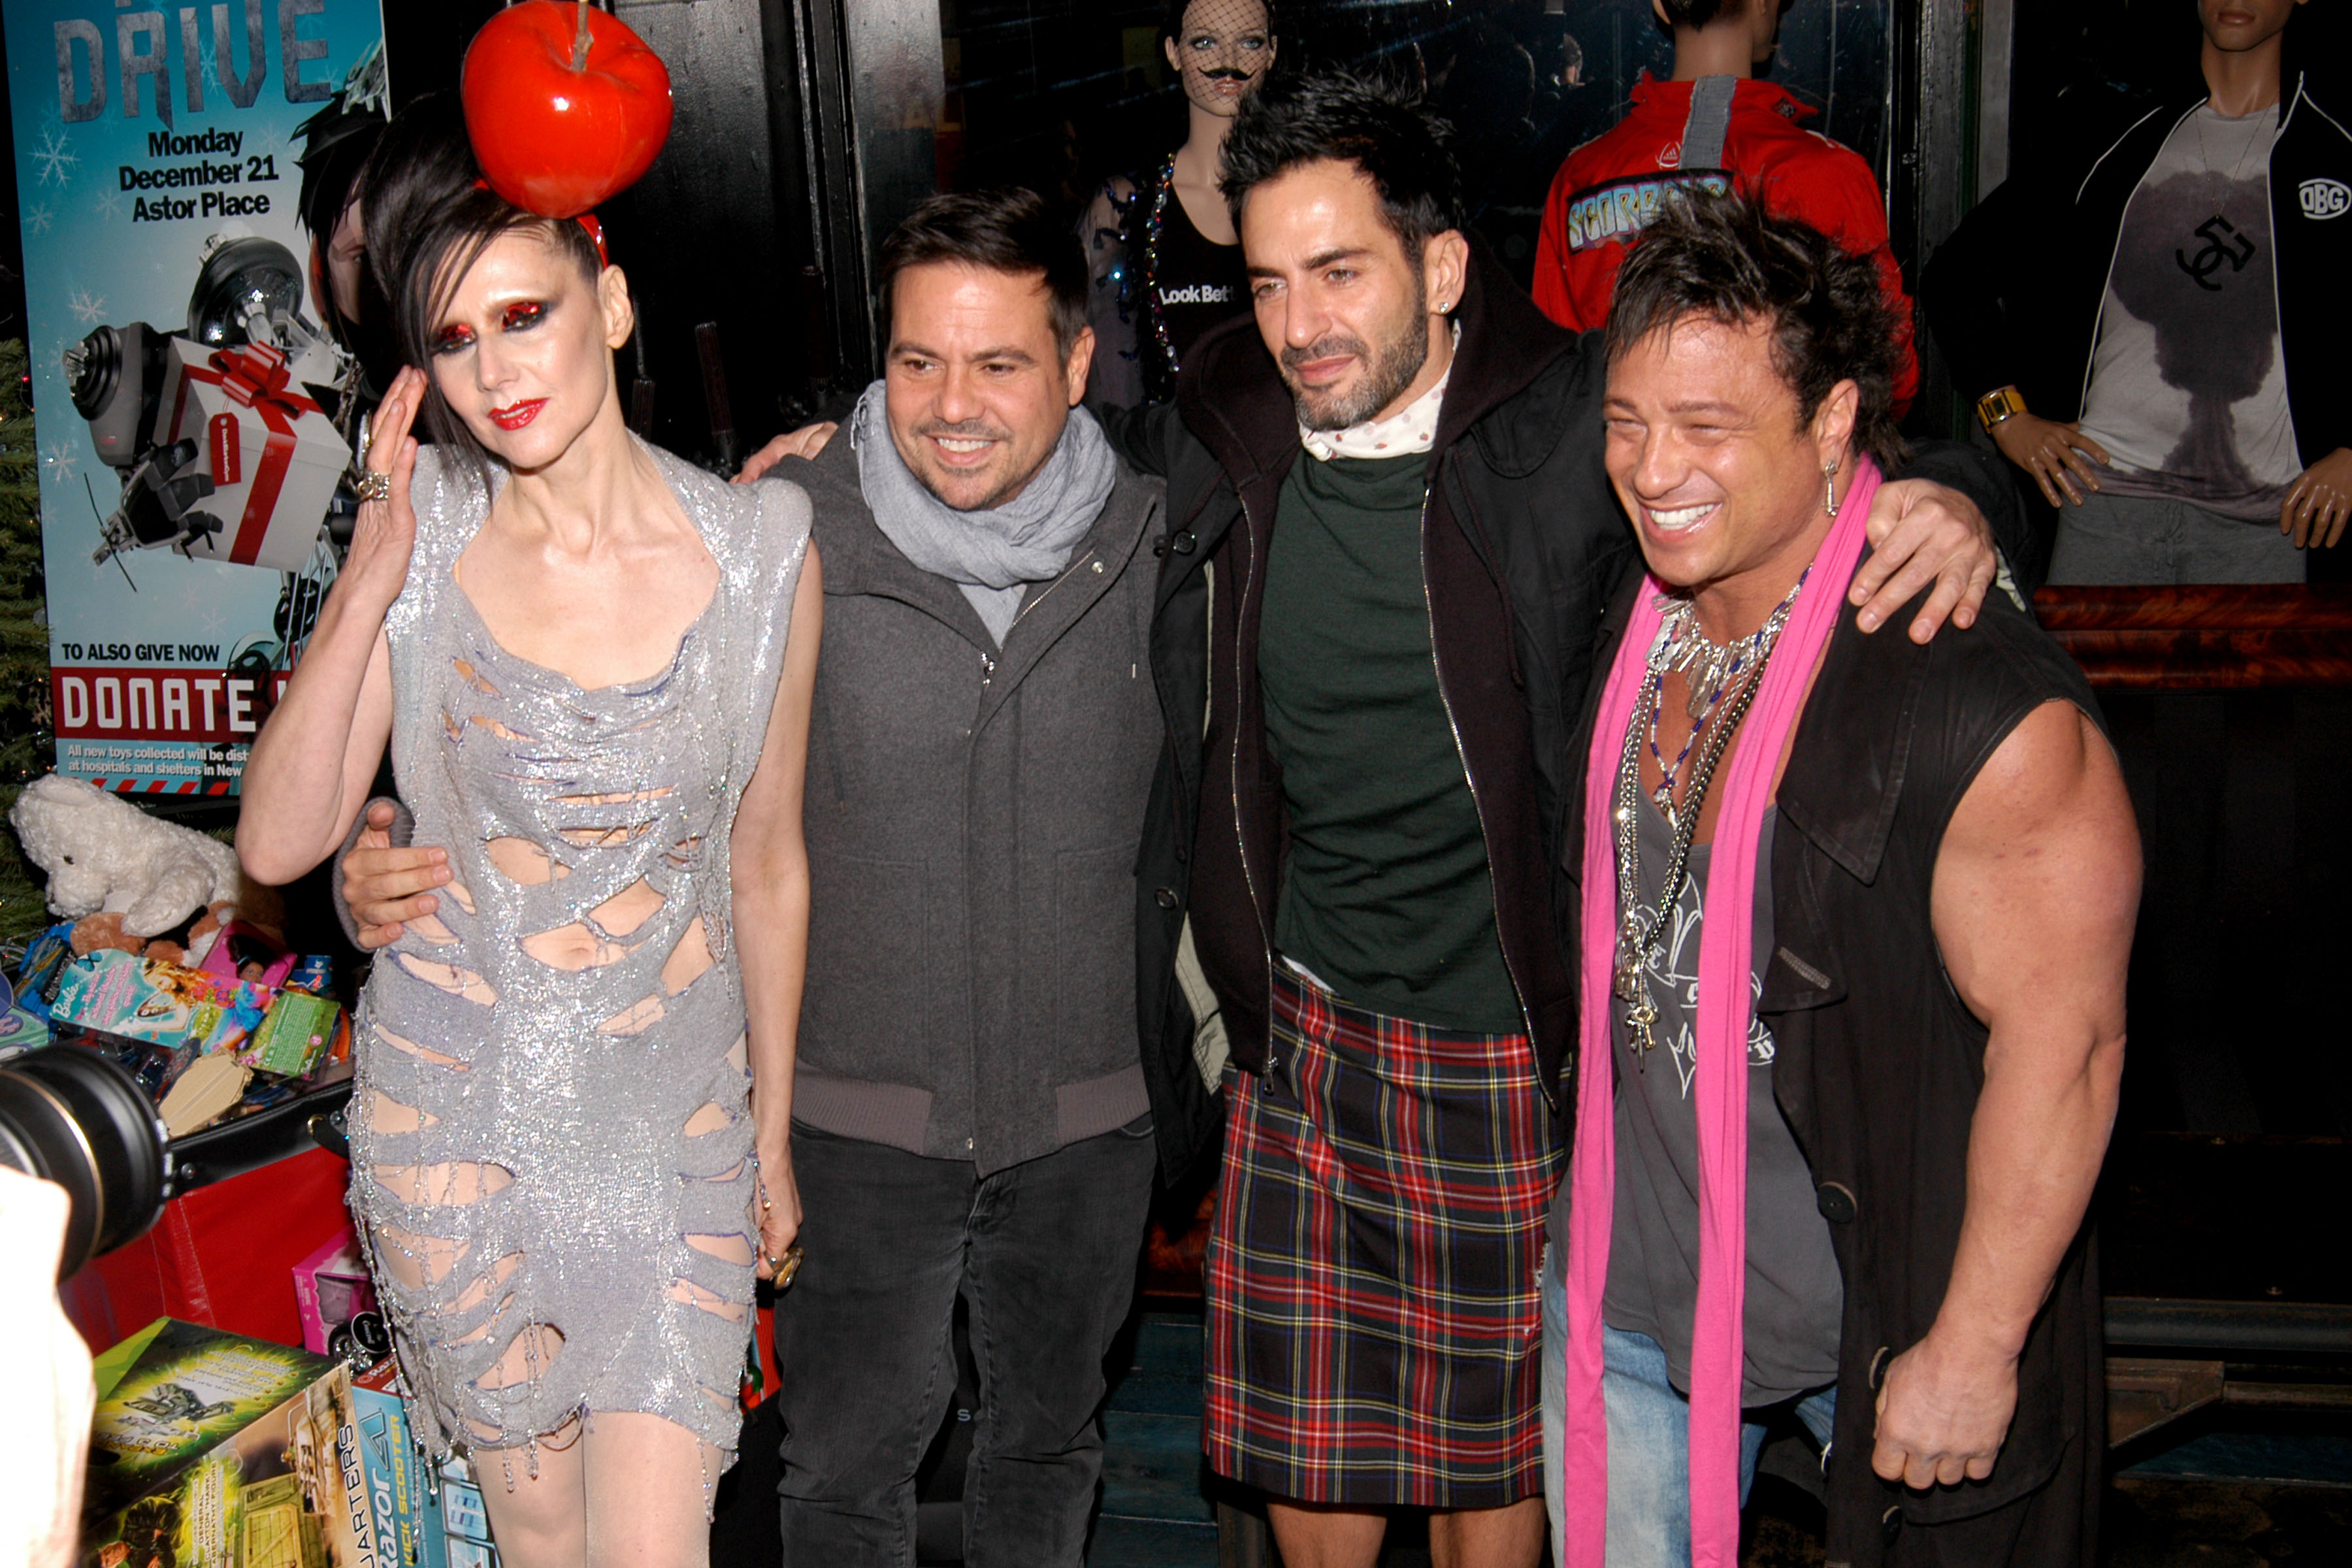 Susanne Bartsch, Narciso Rodriguez, Marc Jacobs, David Barton==DAVID BARTON GYM's TOY DRIVE For Kids At Hospitals And Shelters In New York==David Barton Gym, Astor Place, NYC==December 21, 2009==©Patrick McMullan==Photo- JP PULLOS/PatrickMcMullan.com====